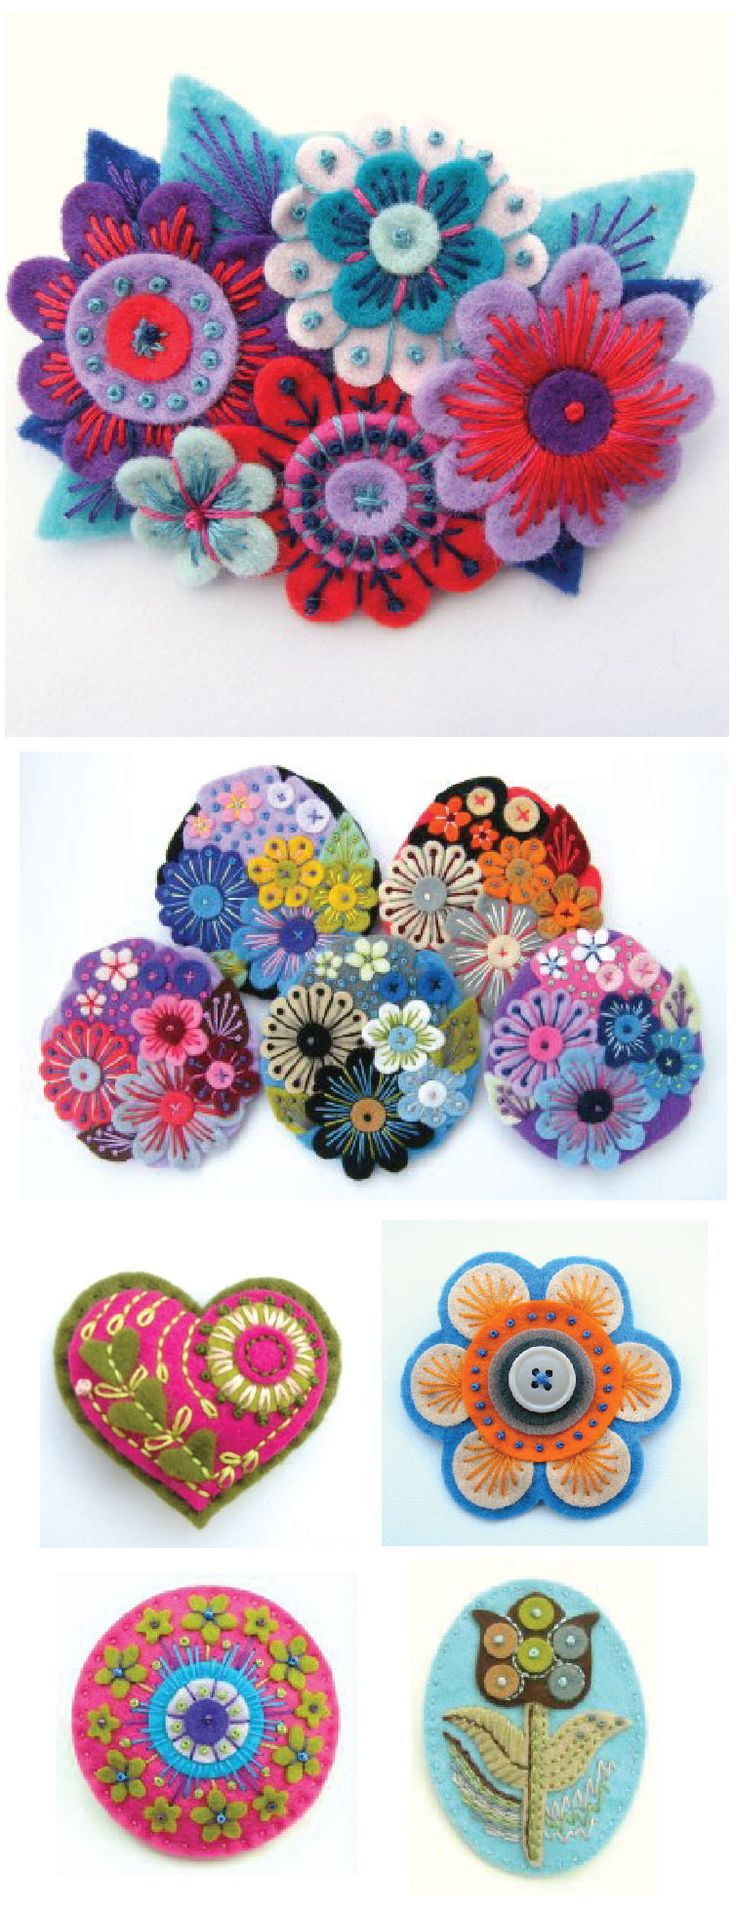 applique designs by jane - Google Search